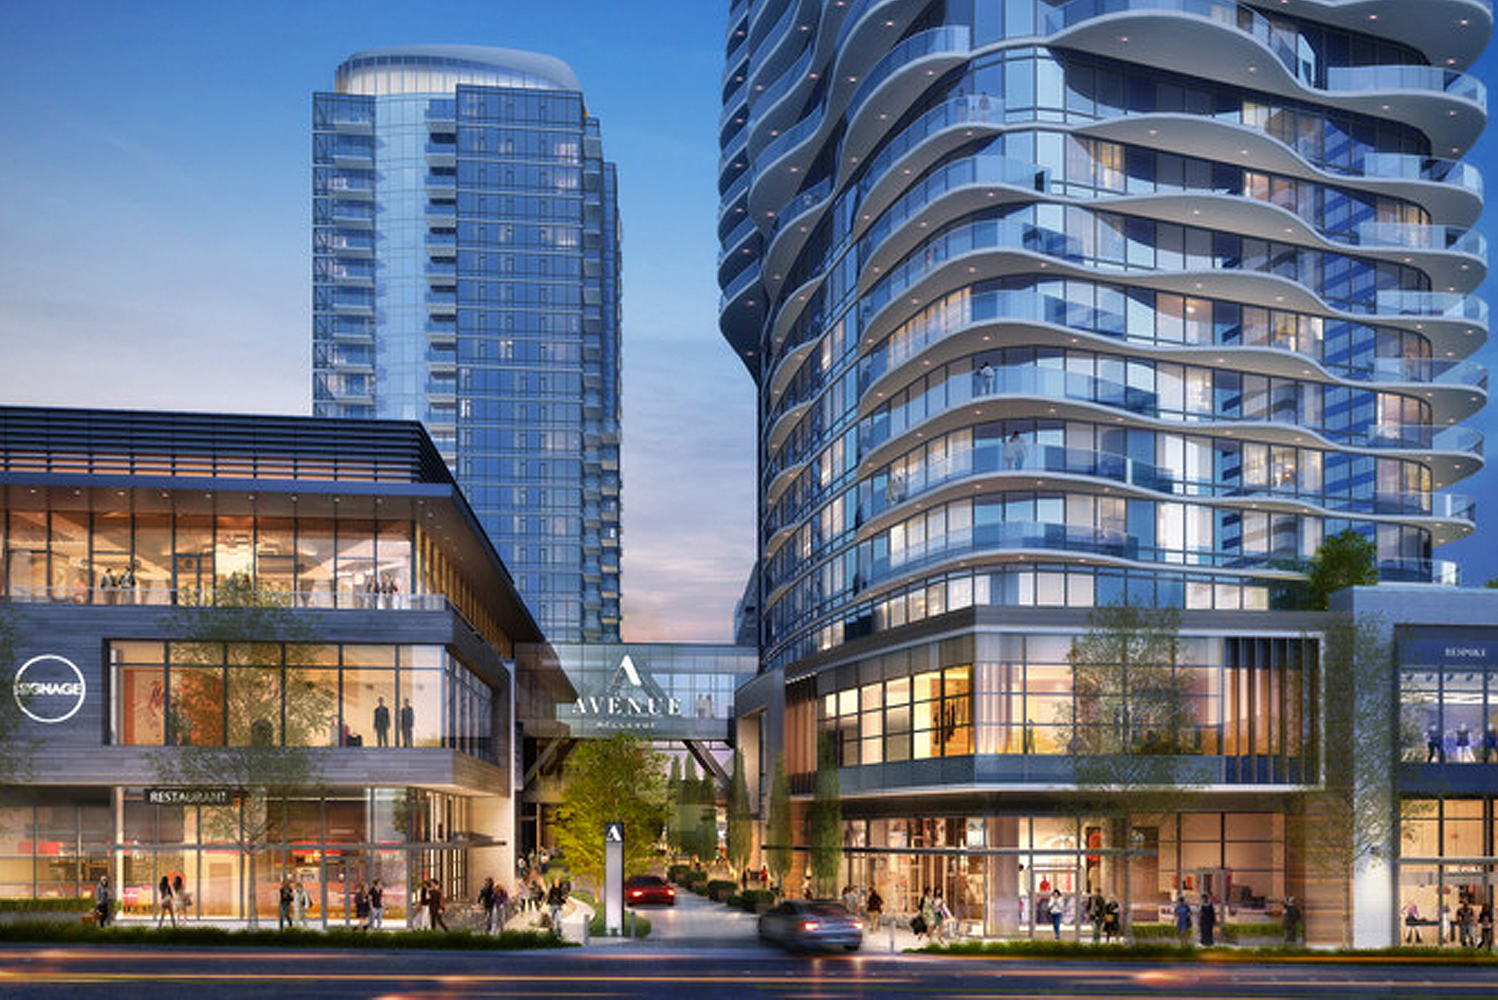 Designed in partnership with Seattle-based Weber Thompson and HBA, Avenue Bellevue will have 332 residences in two towers.